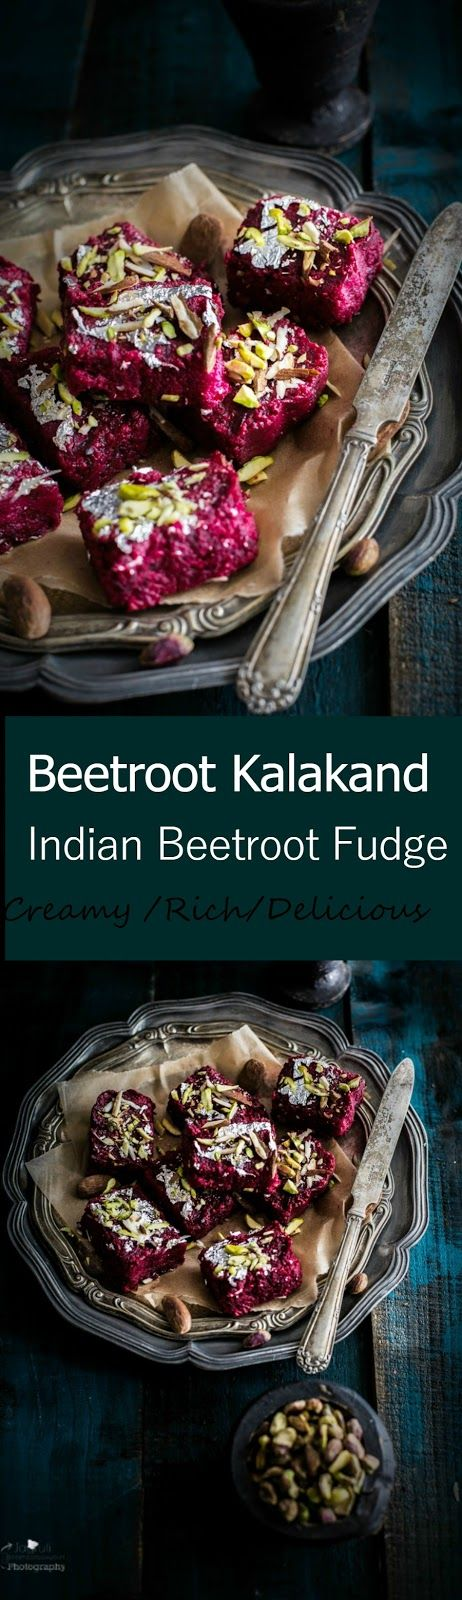 Jagruti's Cooking Odyssey: Beetroot Kalakand - Indian Beetroot Fudge #Diwalispecial